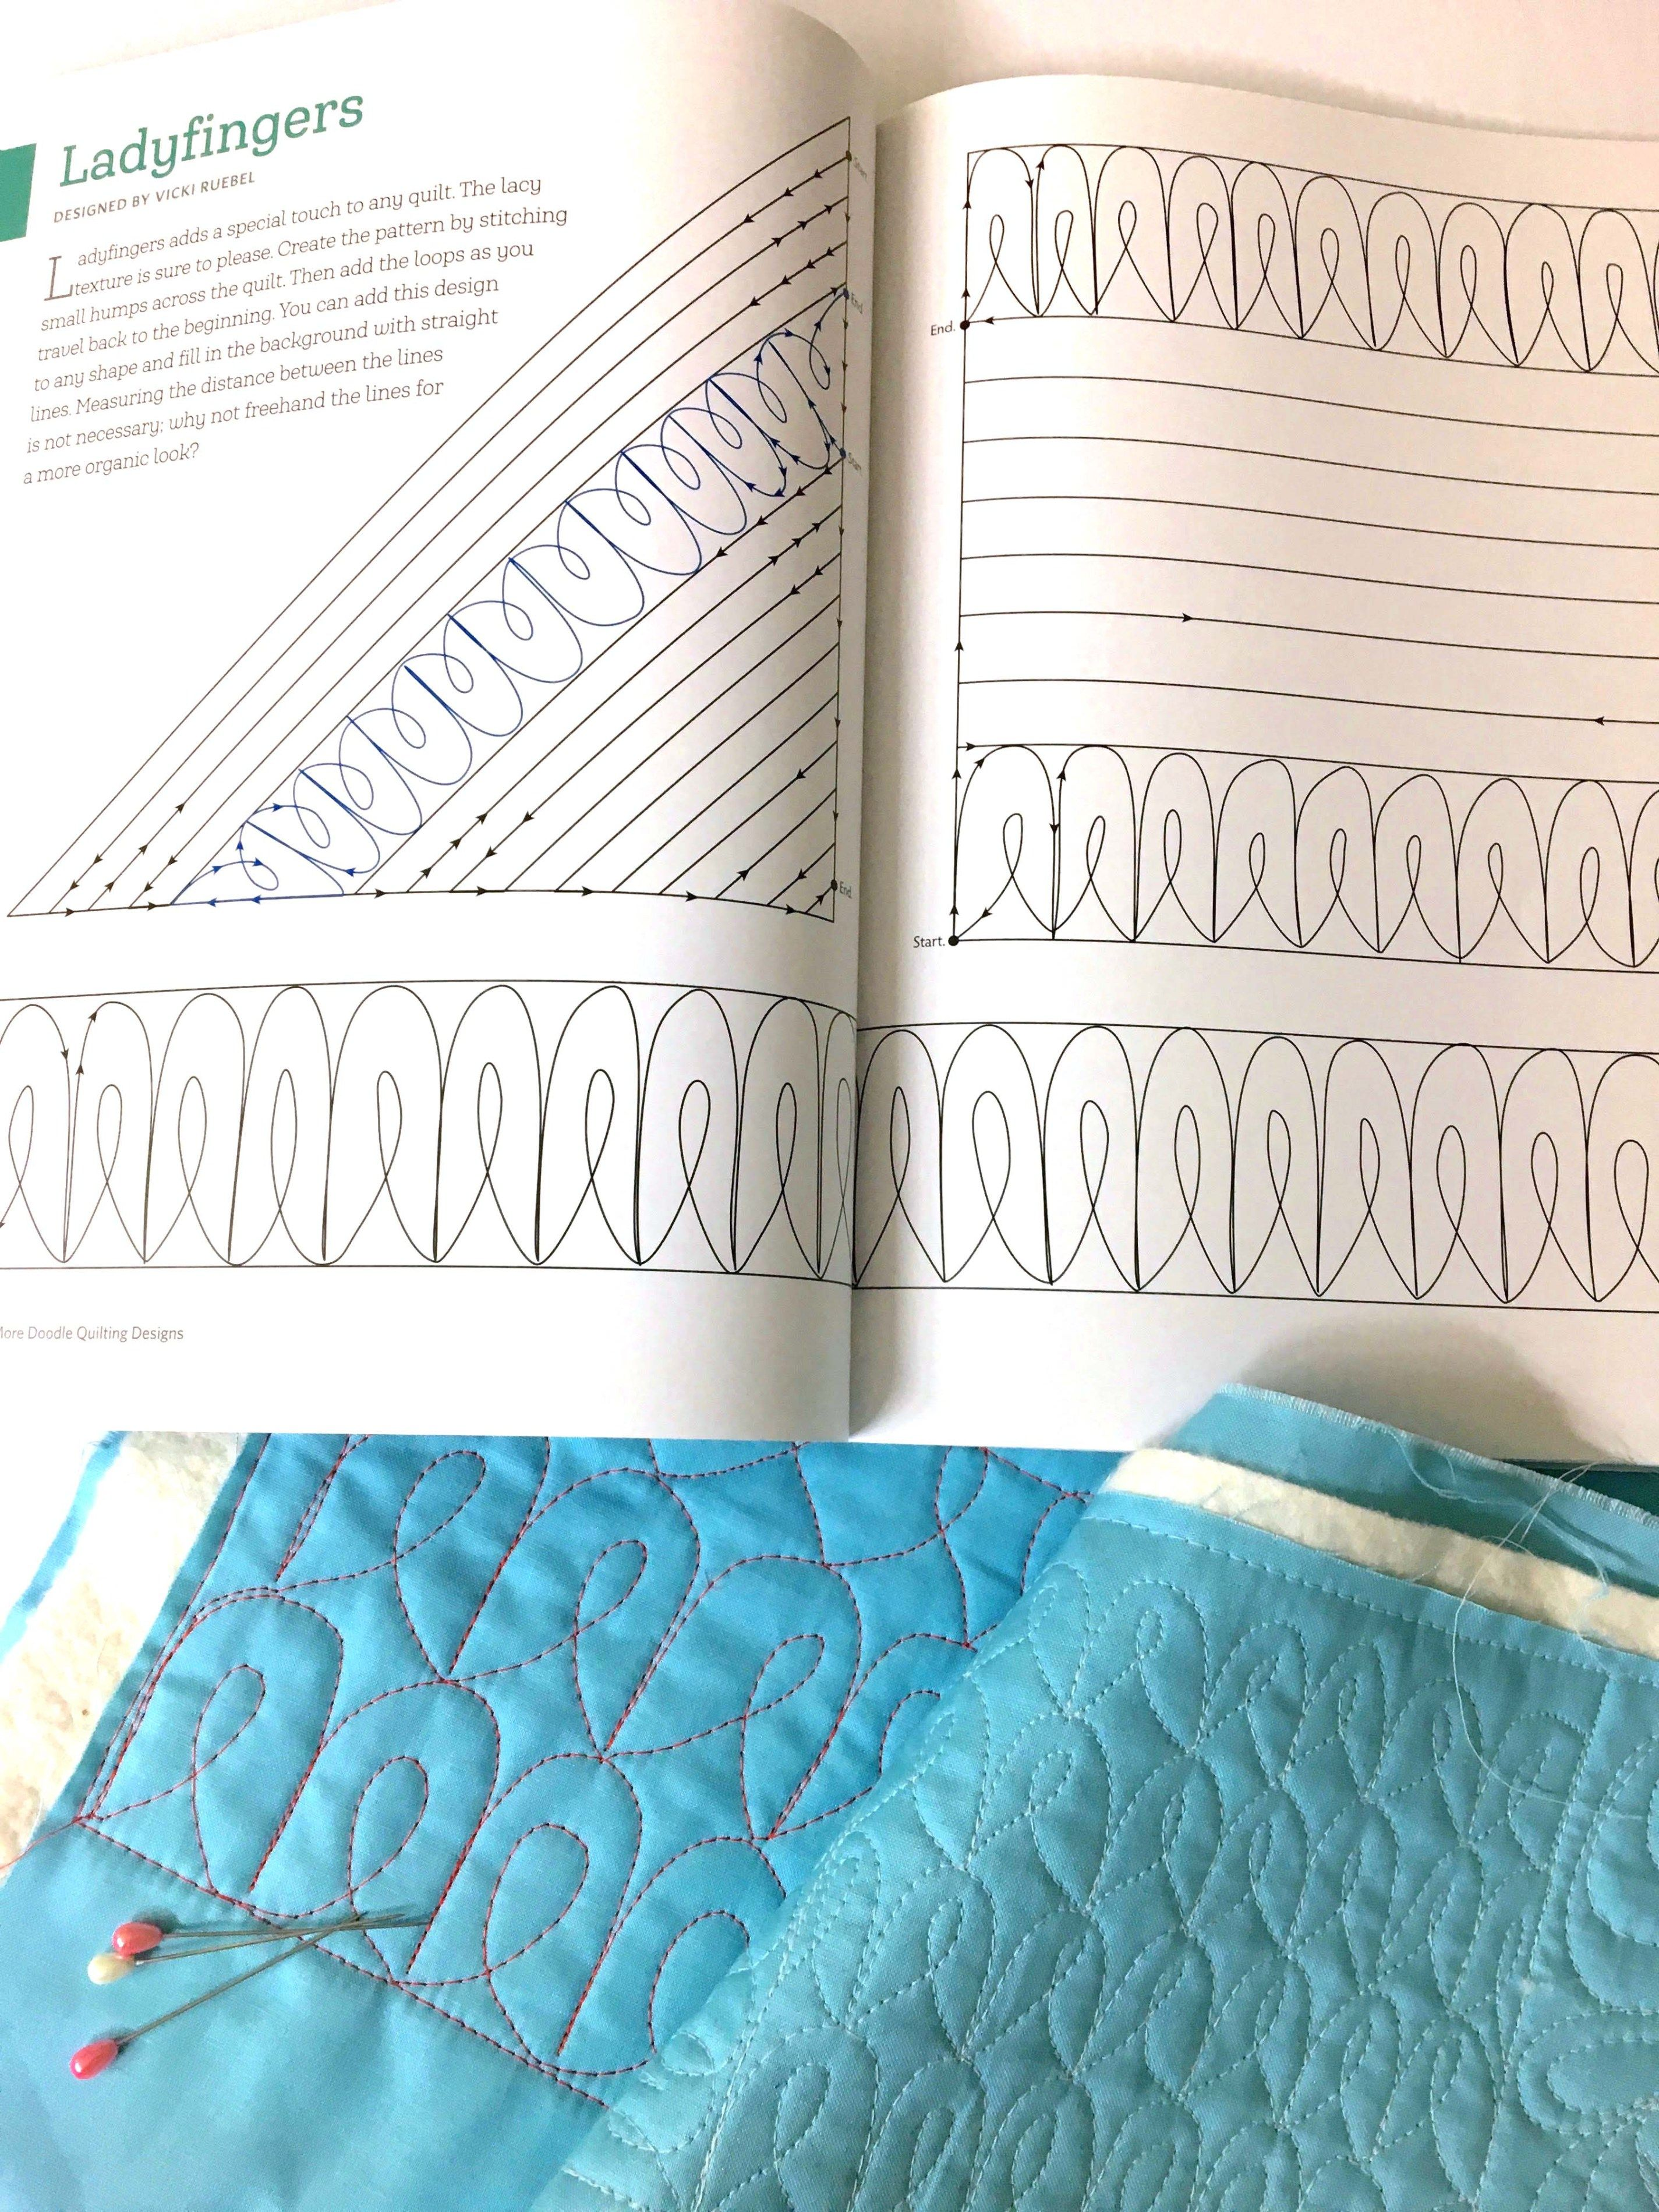 Free Motion Quilting at Home | Quilting | Pinterest | Acolchados ...